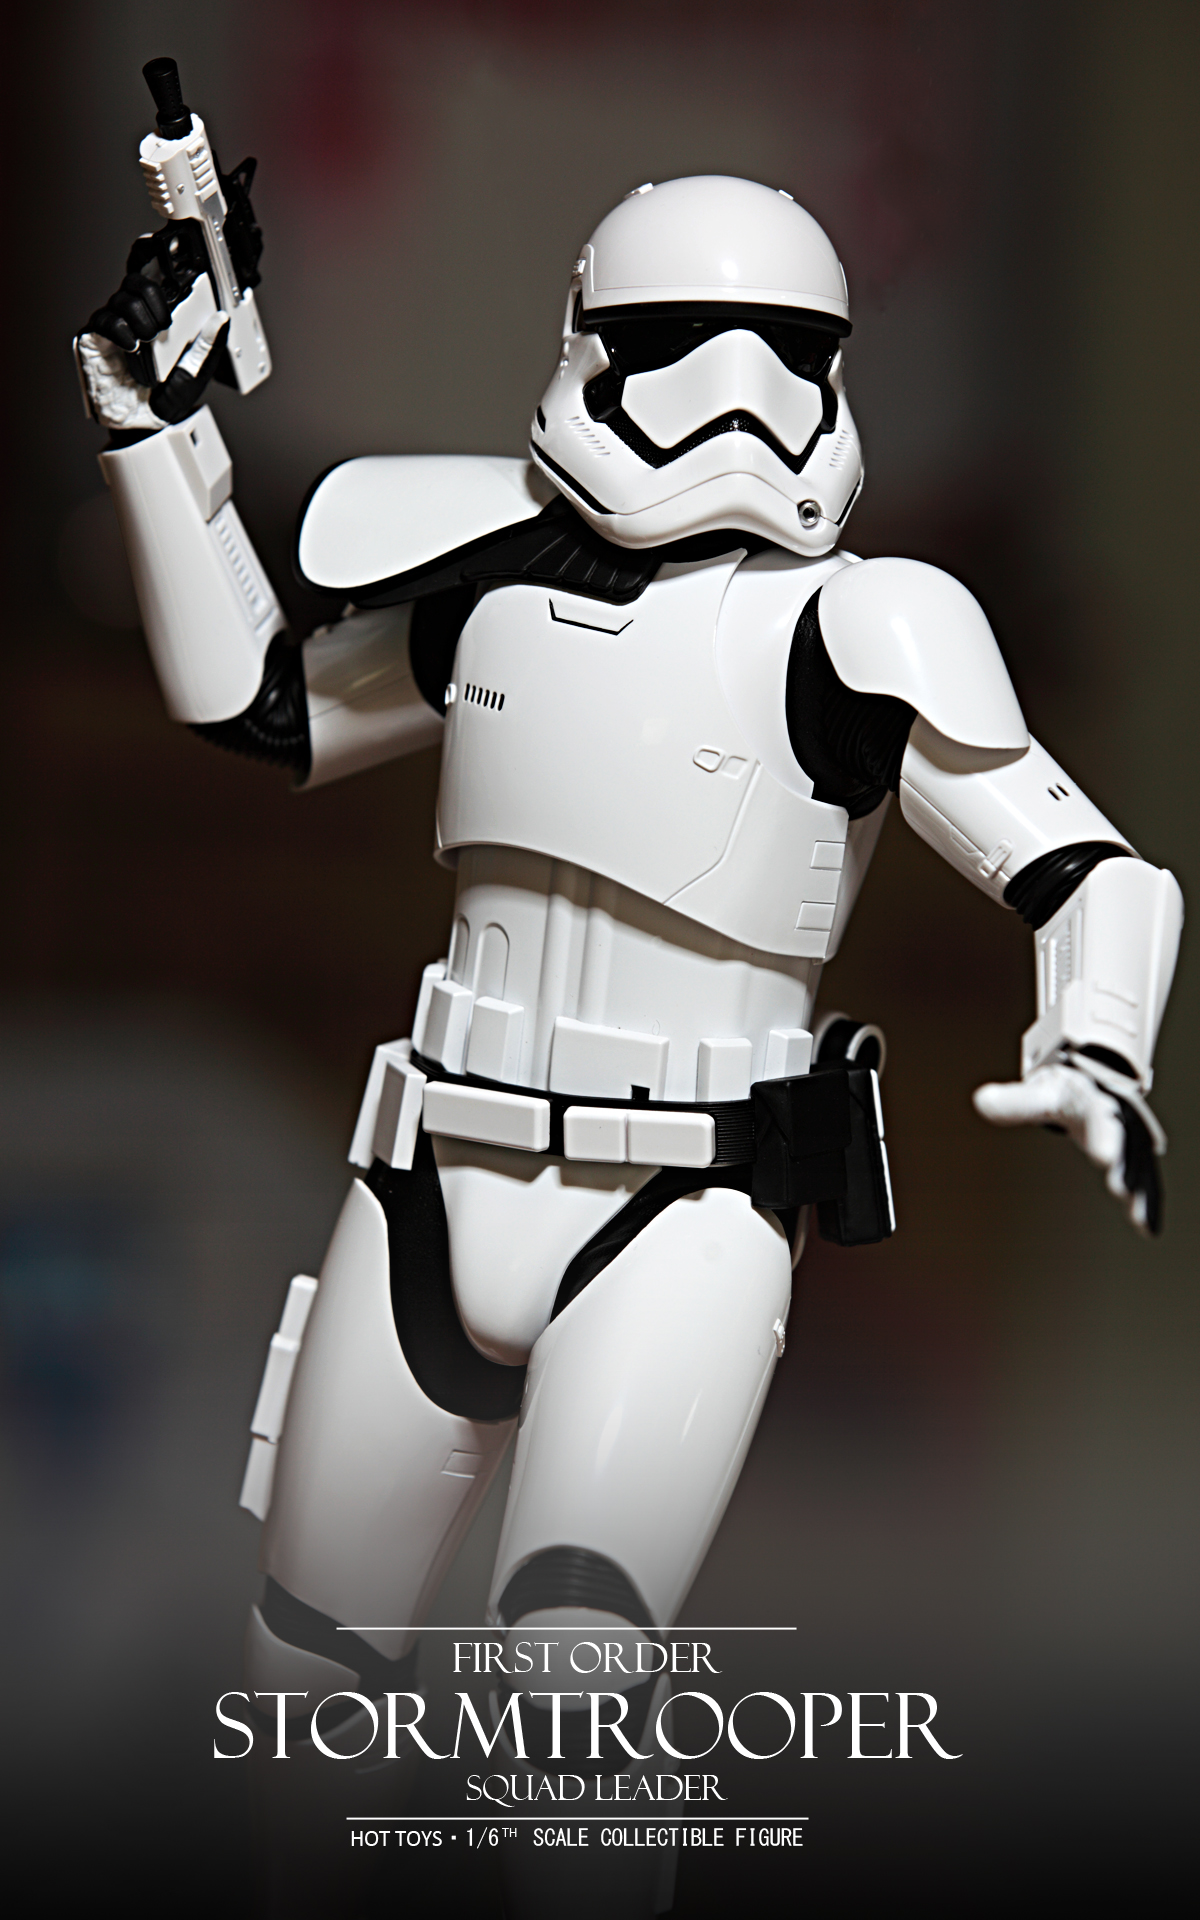 hottoys-star-wars-the-force-awakens-first-order-stormtrooper-Squad-Leader-picture01hottoys-star-wars-the-force-awakens-first-order-stormtrooper-Squad-Leader-picture05